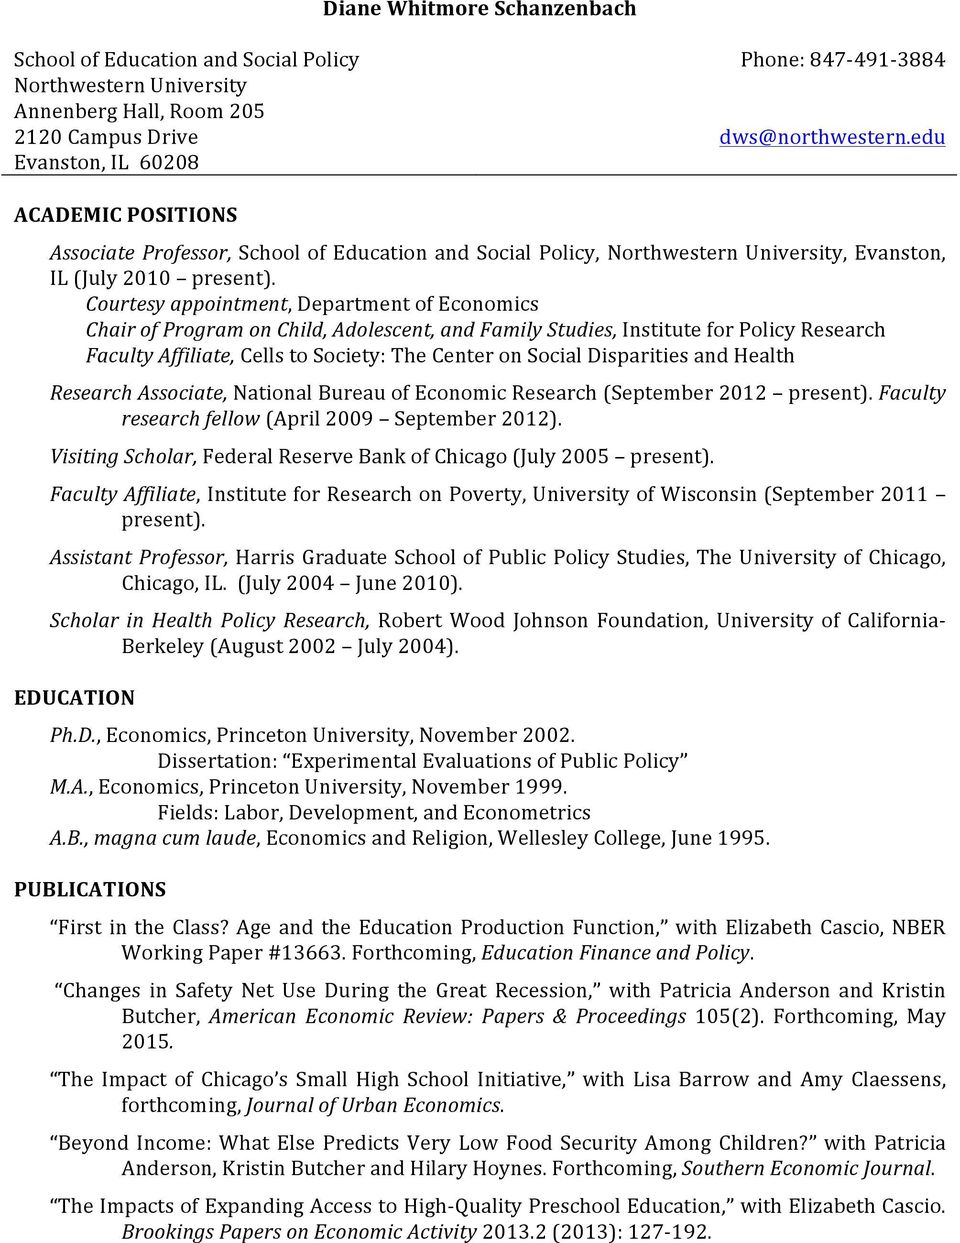 Courtesy appointment, Department of Economics Chair of Program on Child, Adolescent, and Family Studies, Institute for Policy Research Faculty Affiliate, Cells to Society: The Center on Social